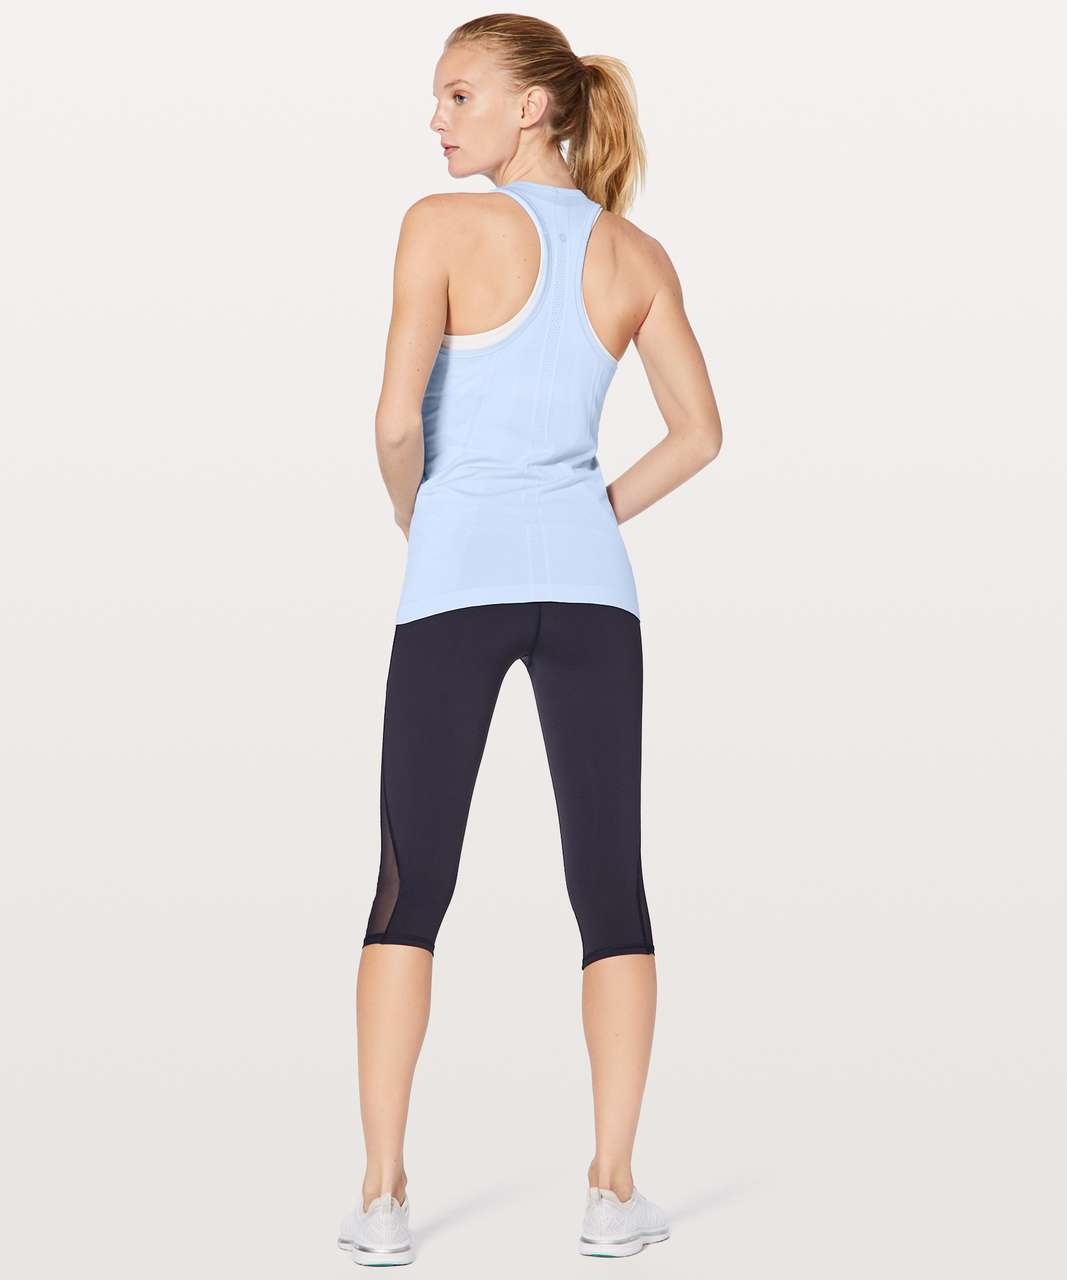 Lululemon Swiftly Tech Racerback - Cool Breeze / Cool Breeze